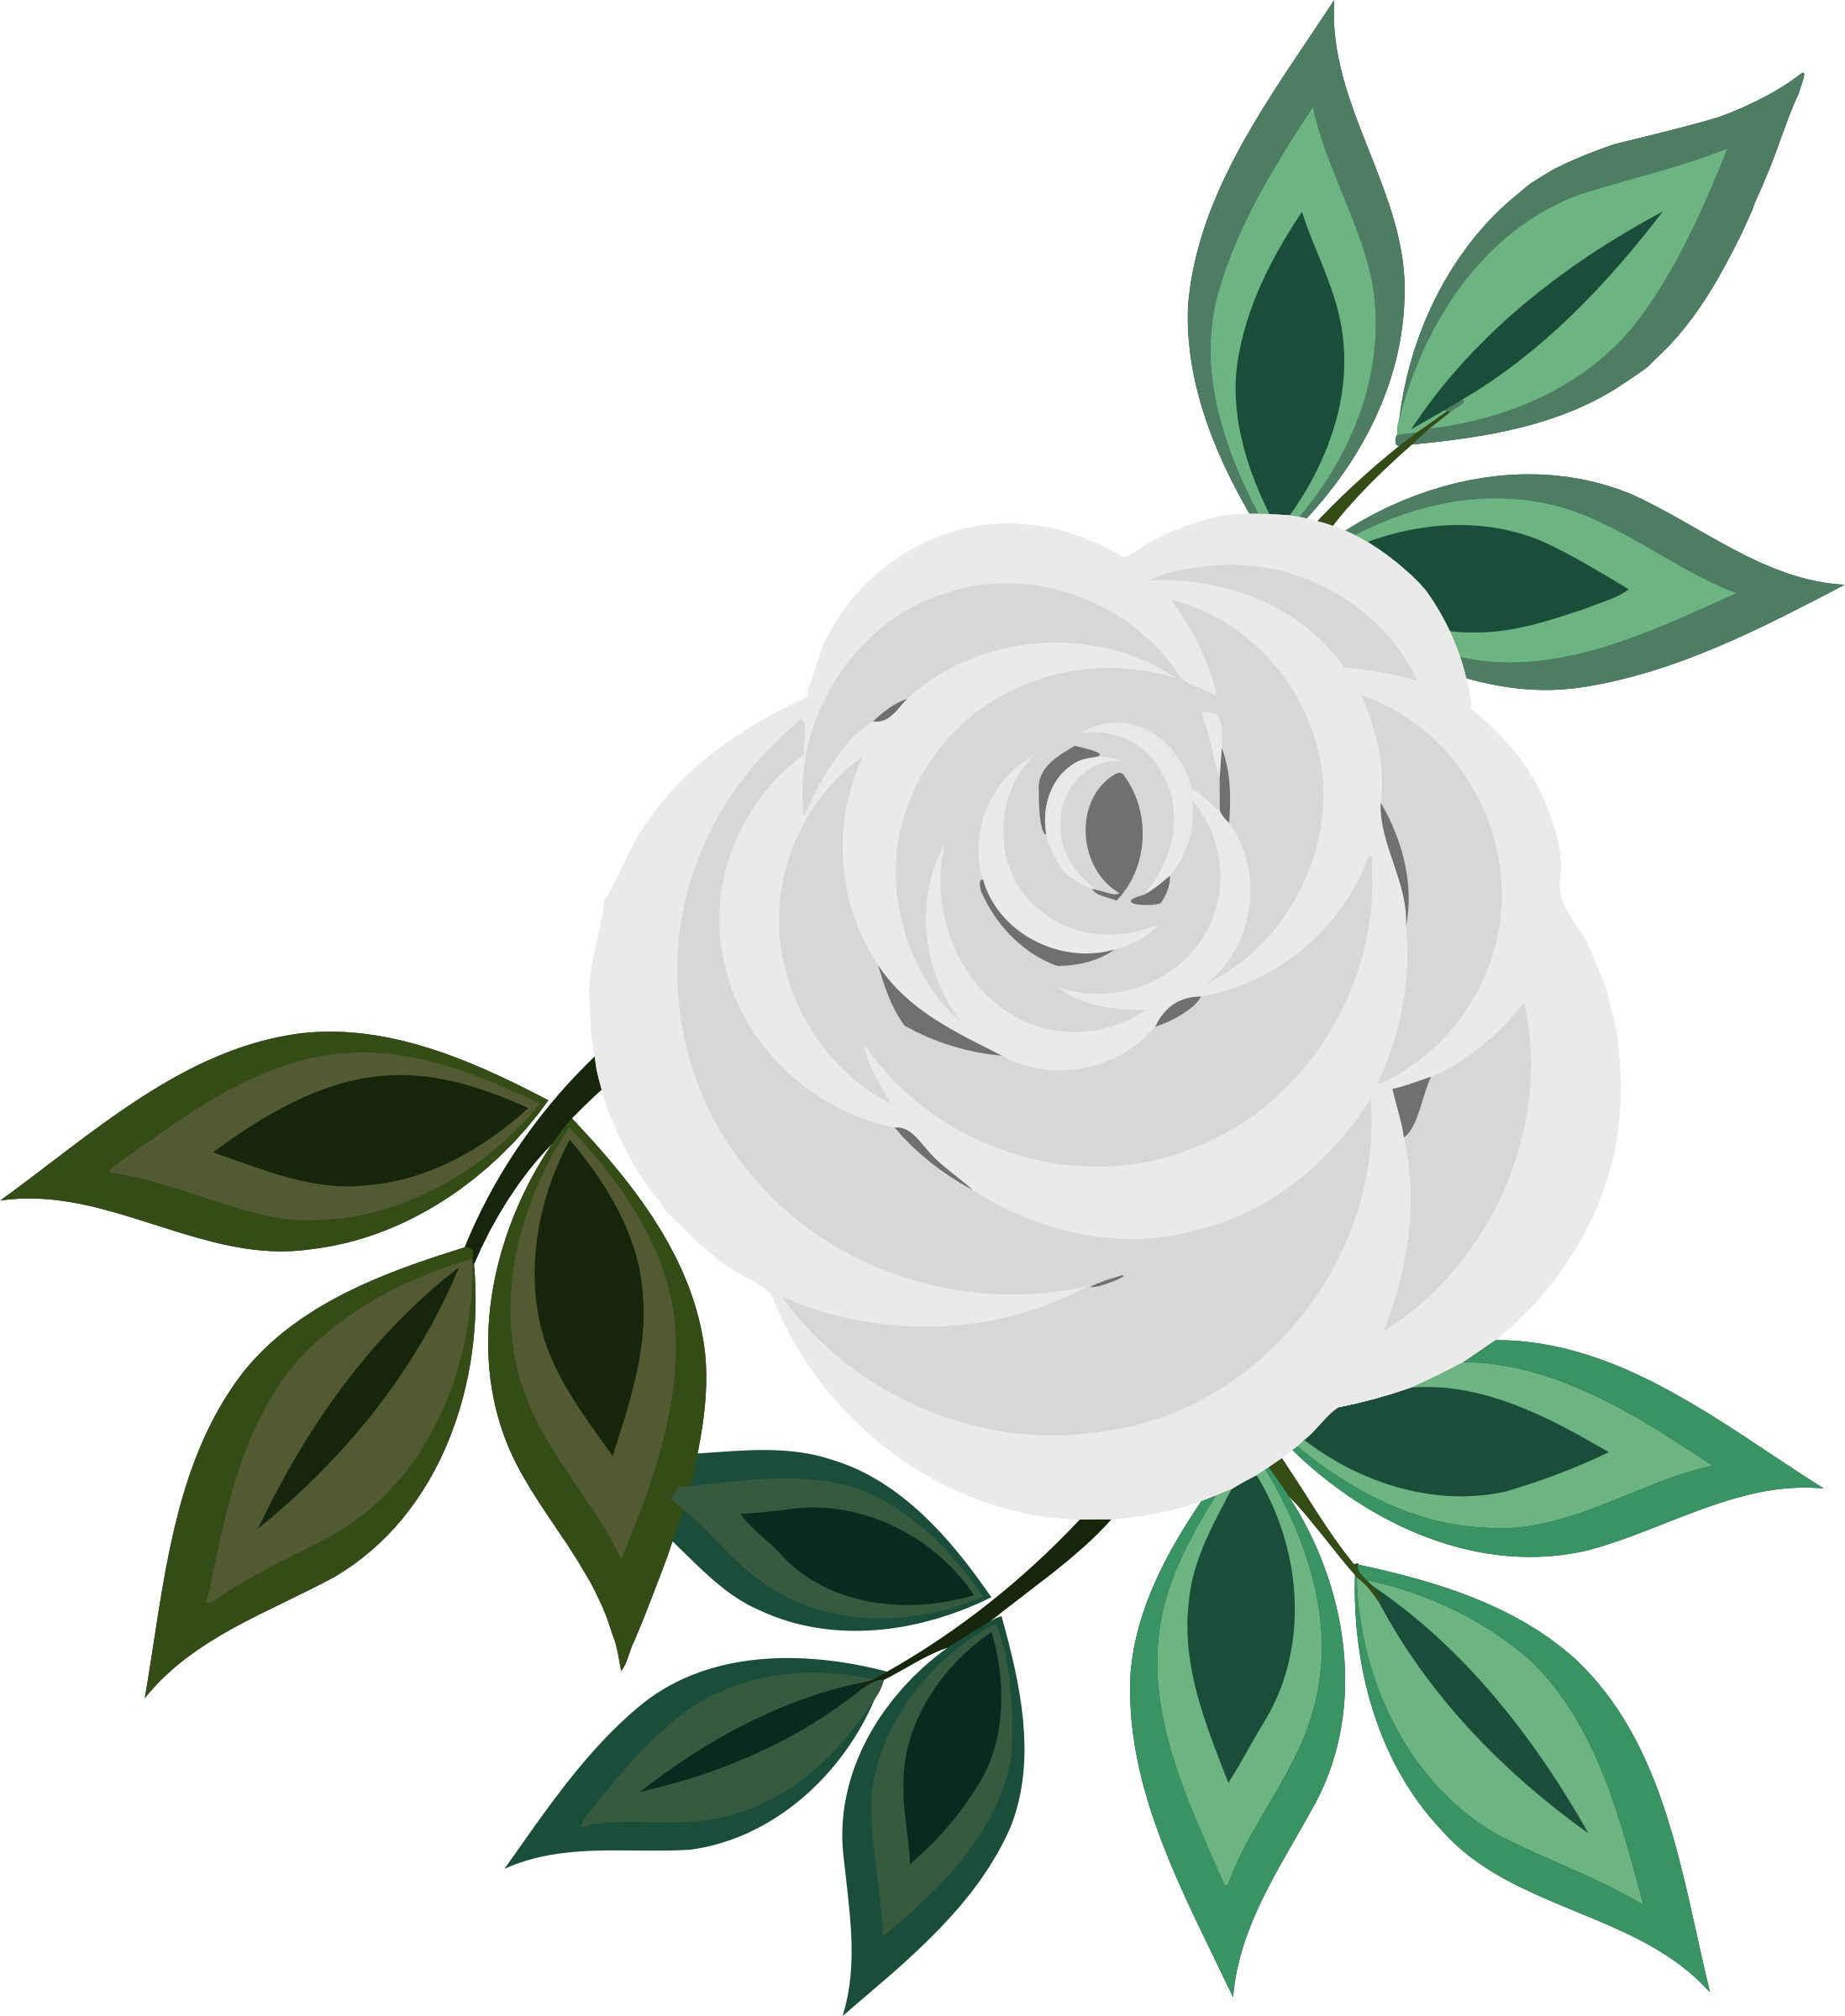 HD This Free Icons Png Design Of Rose 20.